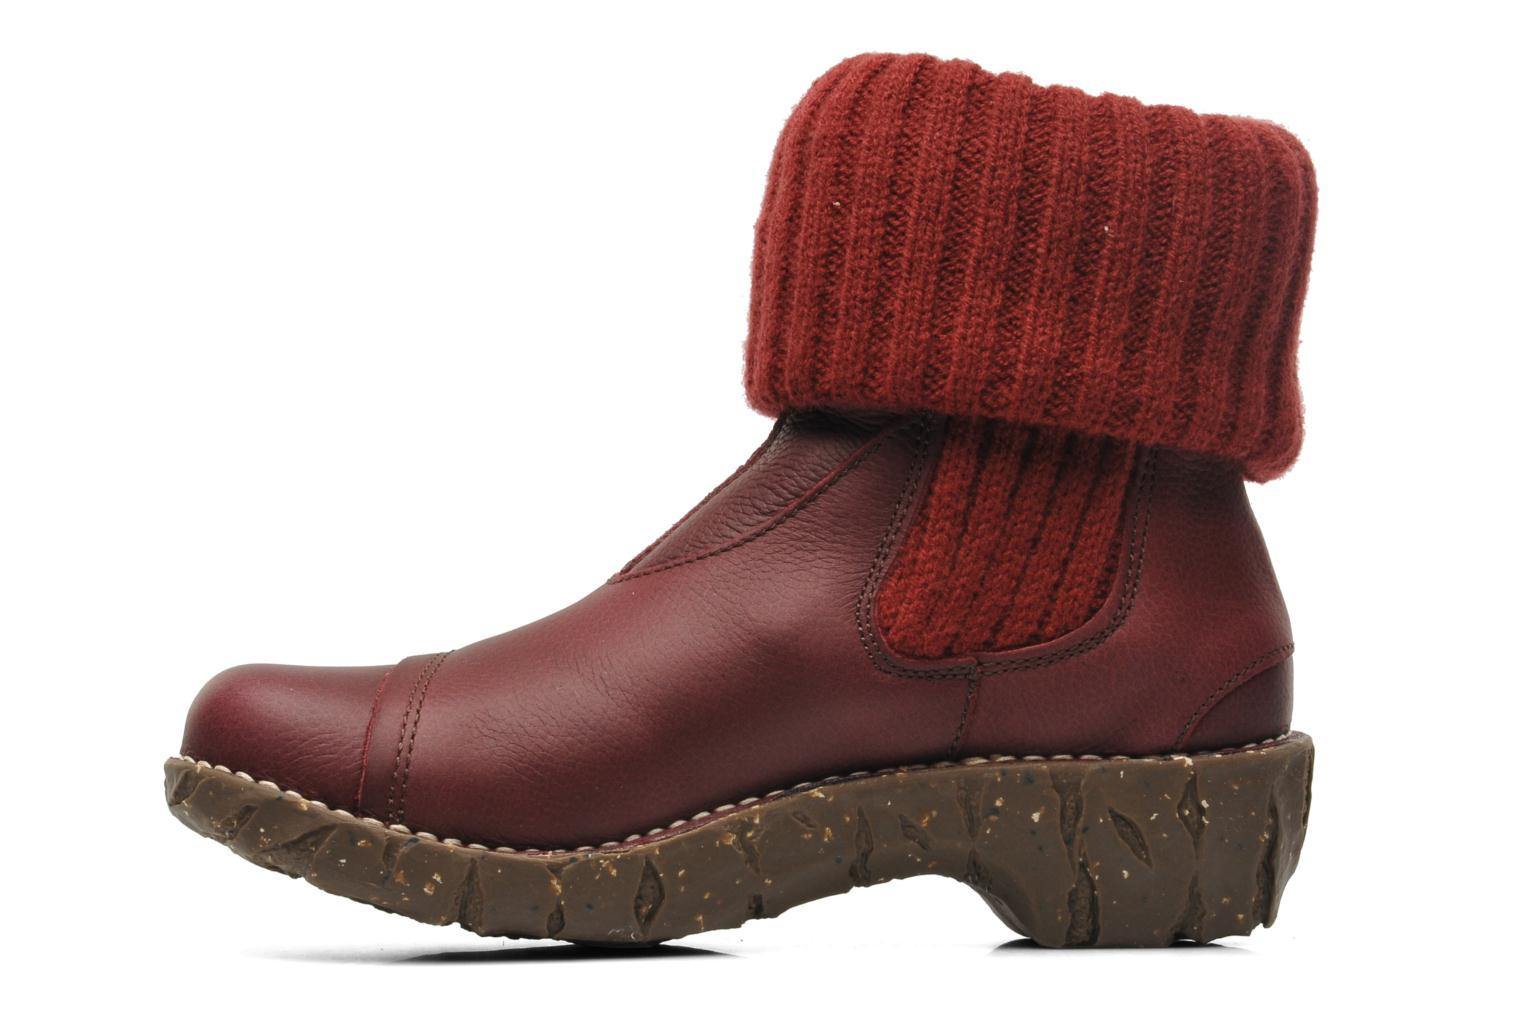 Bottines et boots El Naturalista Iggdrasil N097 Marron vue face